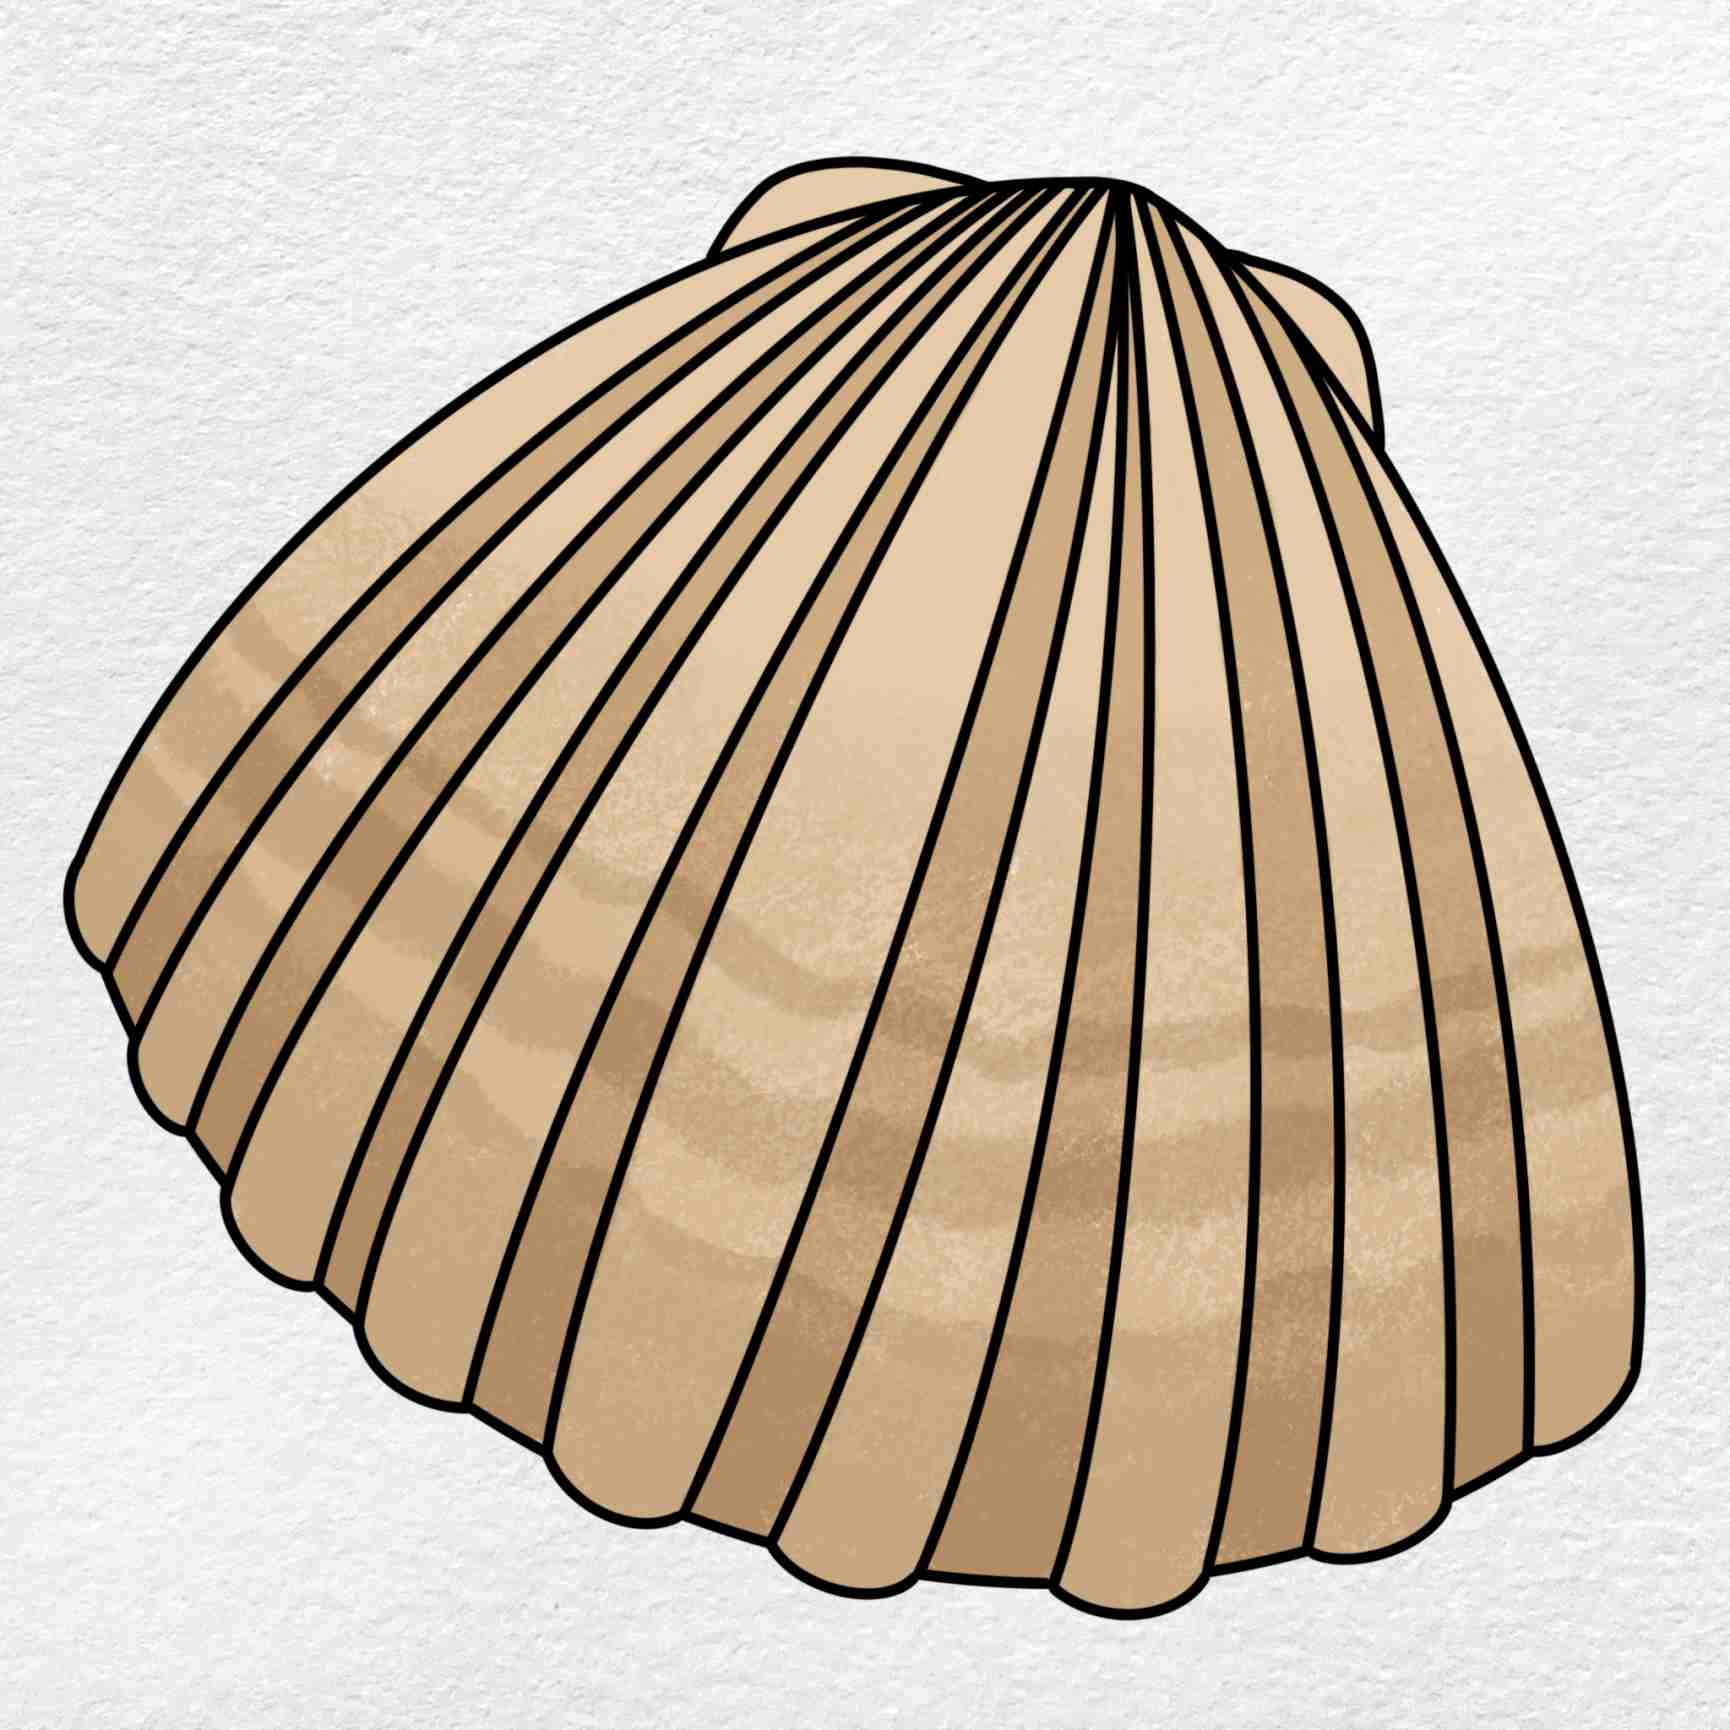 Clam Drawing: Step 6